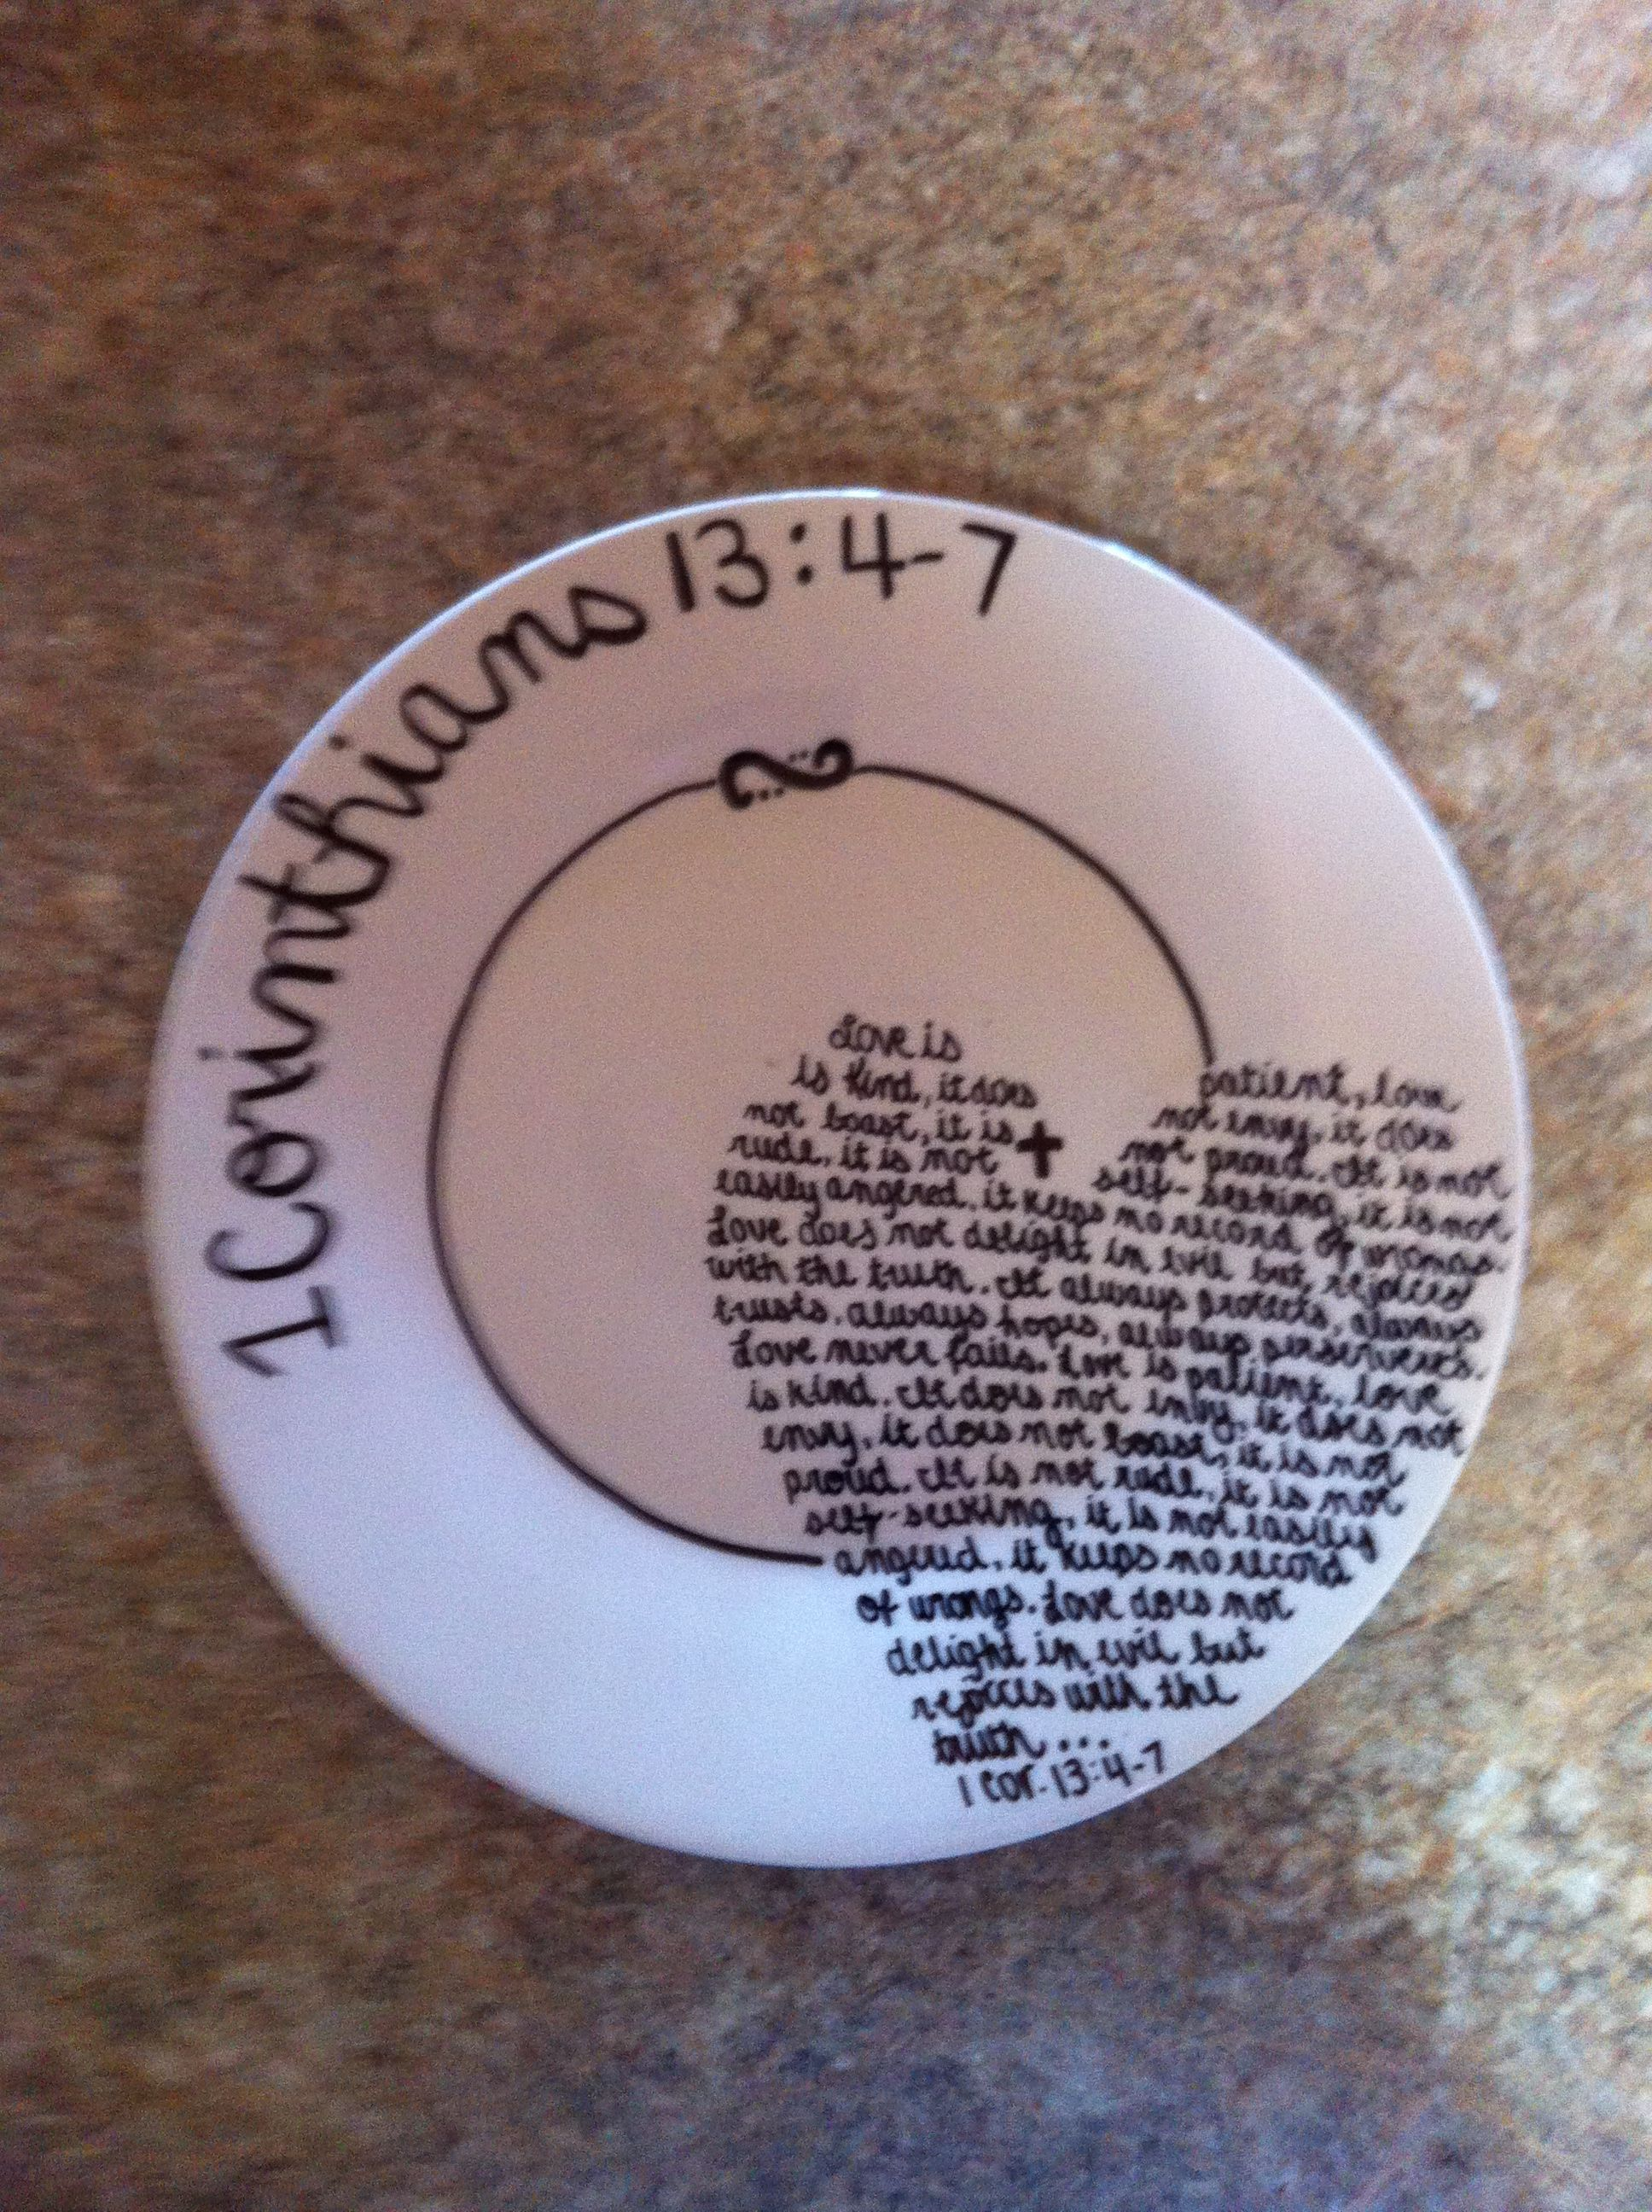 #scripture #something #sharpie #design #plates #plate #maybe #could #them #with #this #take #they #can #andDIY sharpie plate!  Maybe not this design or scripture, but we could put something on the plates and it can be something they take with them :) #sharpieplates